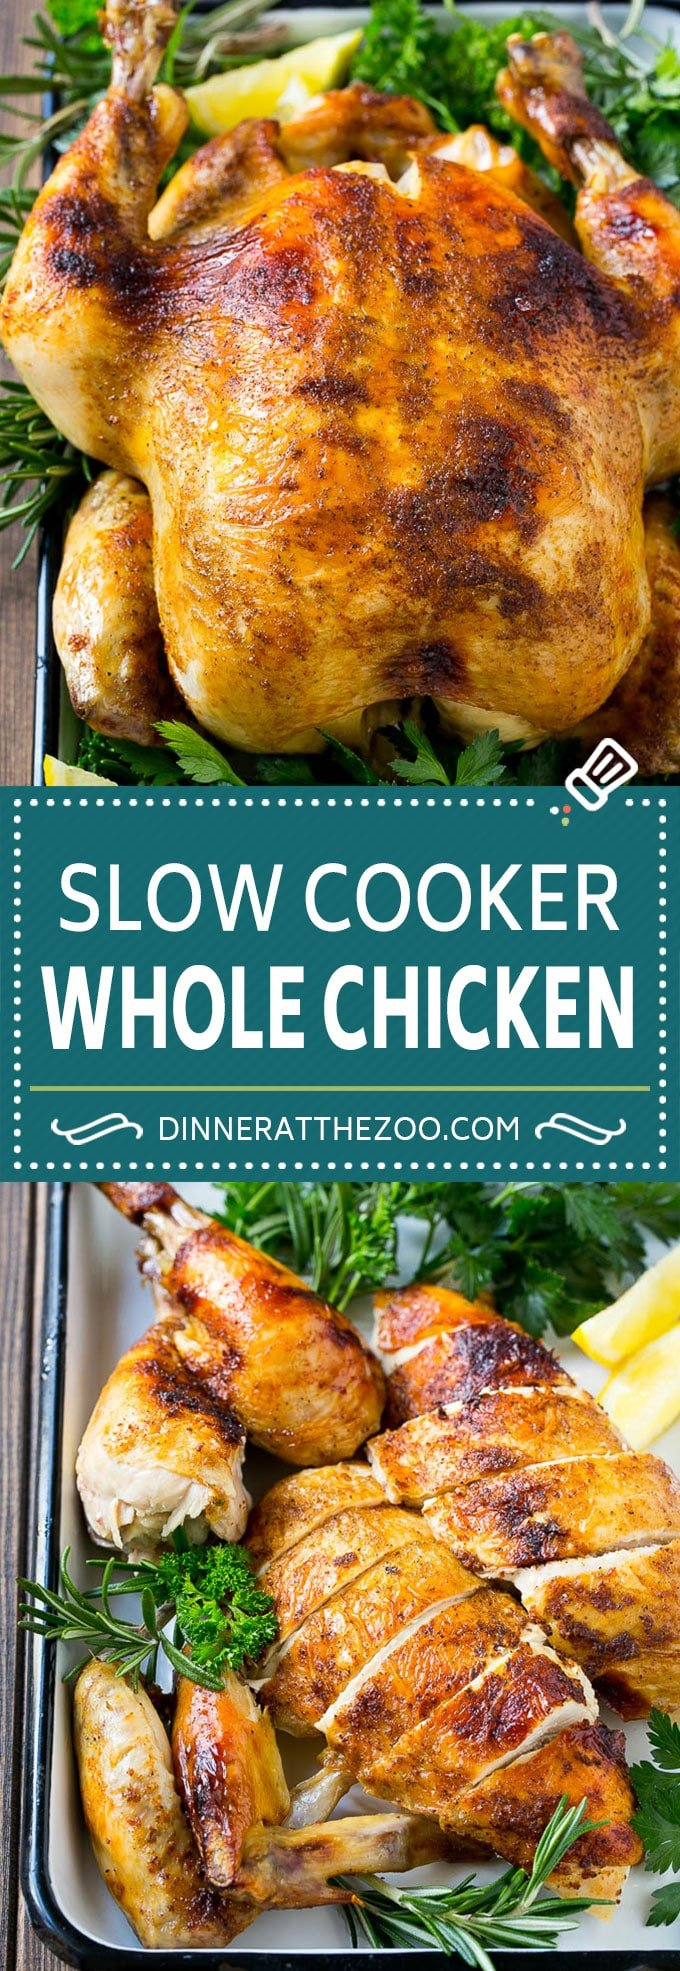 Slow Cooker Whole Chicken | Slow Cooker Rotisserie Chicken | Crock Pot Roasted Chicken | Crock Pot Whole Chicken #chicken #slowcooker #crockpot #glutenfree #dinner #dinneratthezoo